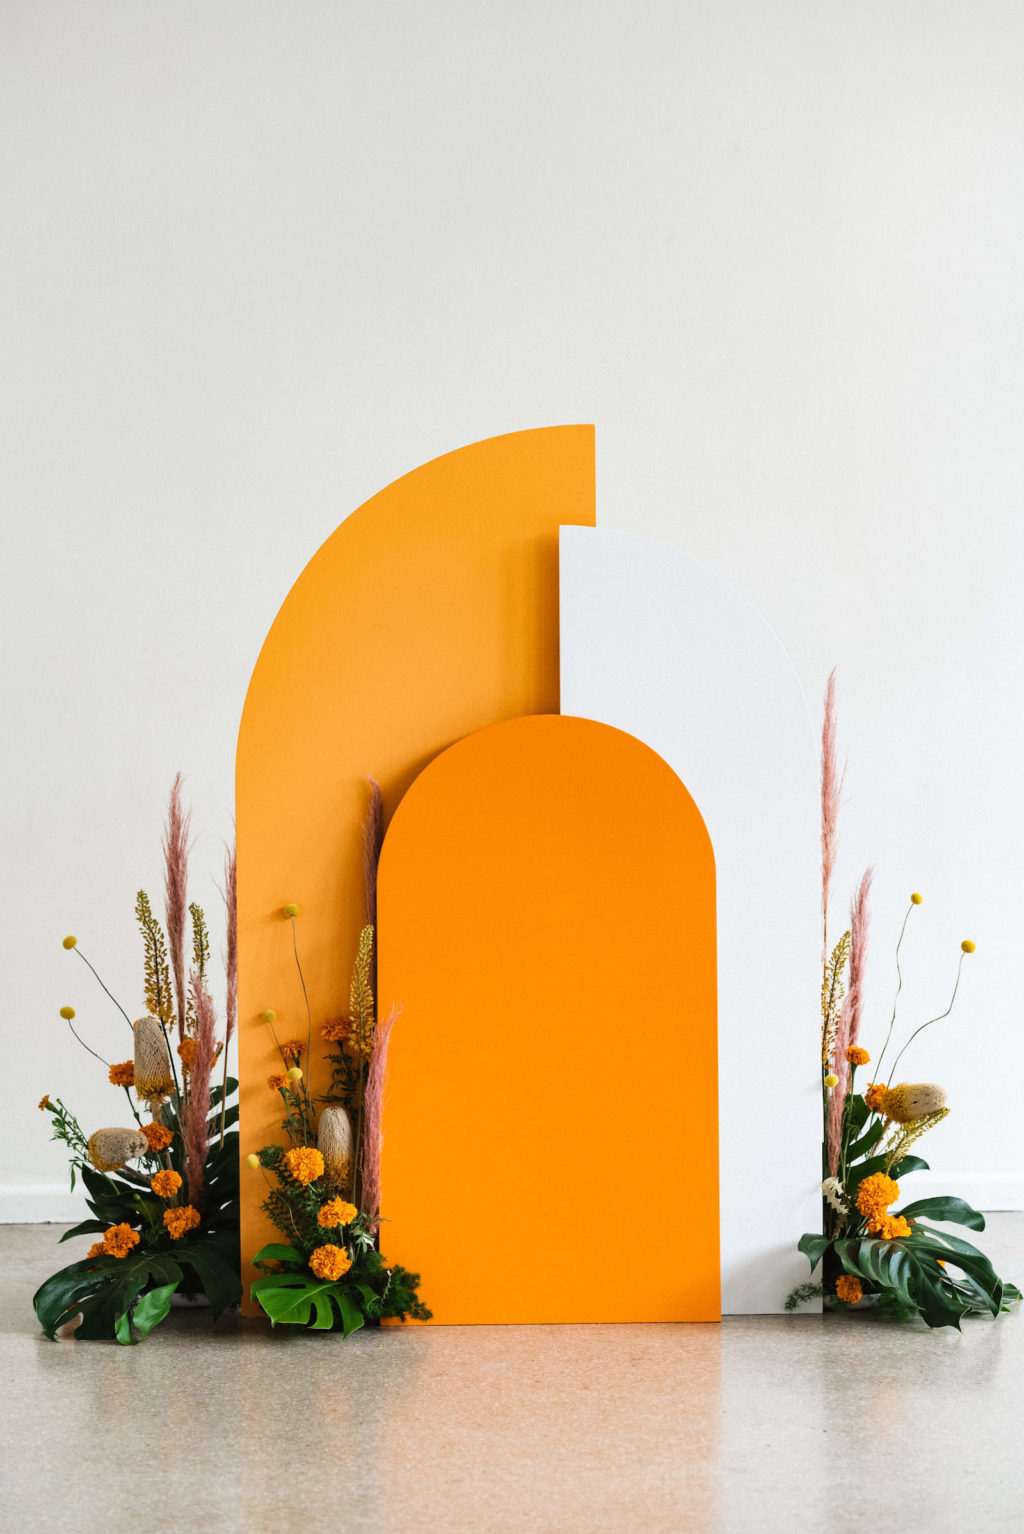 Vibrant Eclectic Mid Century Modern Geometric Orange and White Wedding Ceremony Arch Decor, Monstera Palm Leaves, Orange Flowers and Pampas Grass